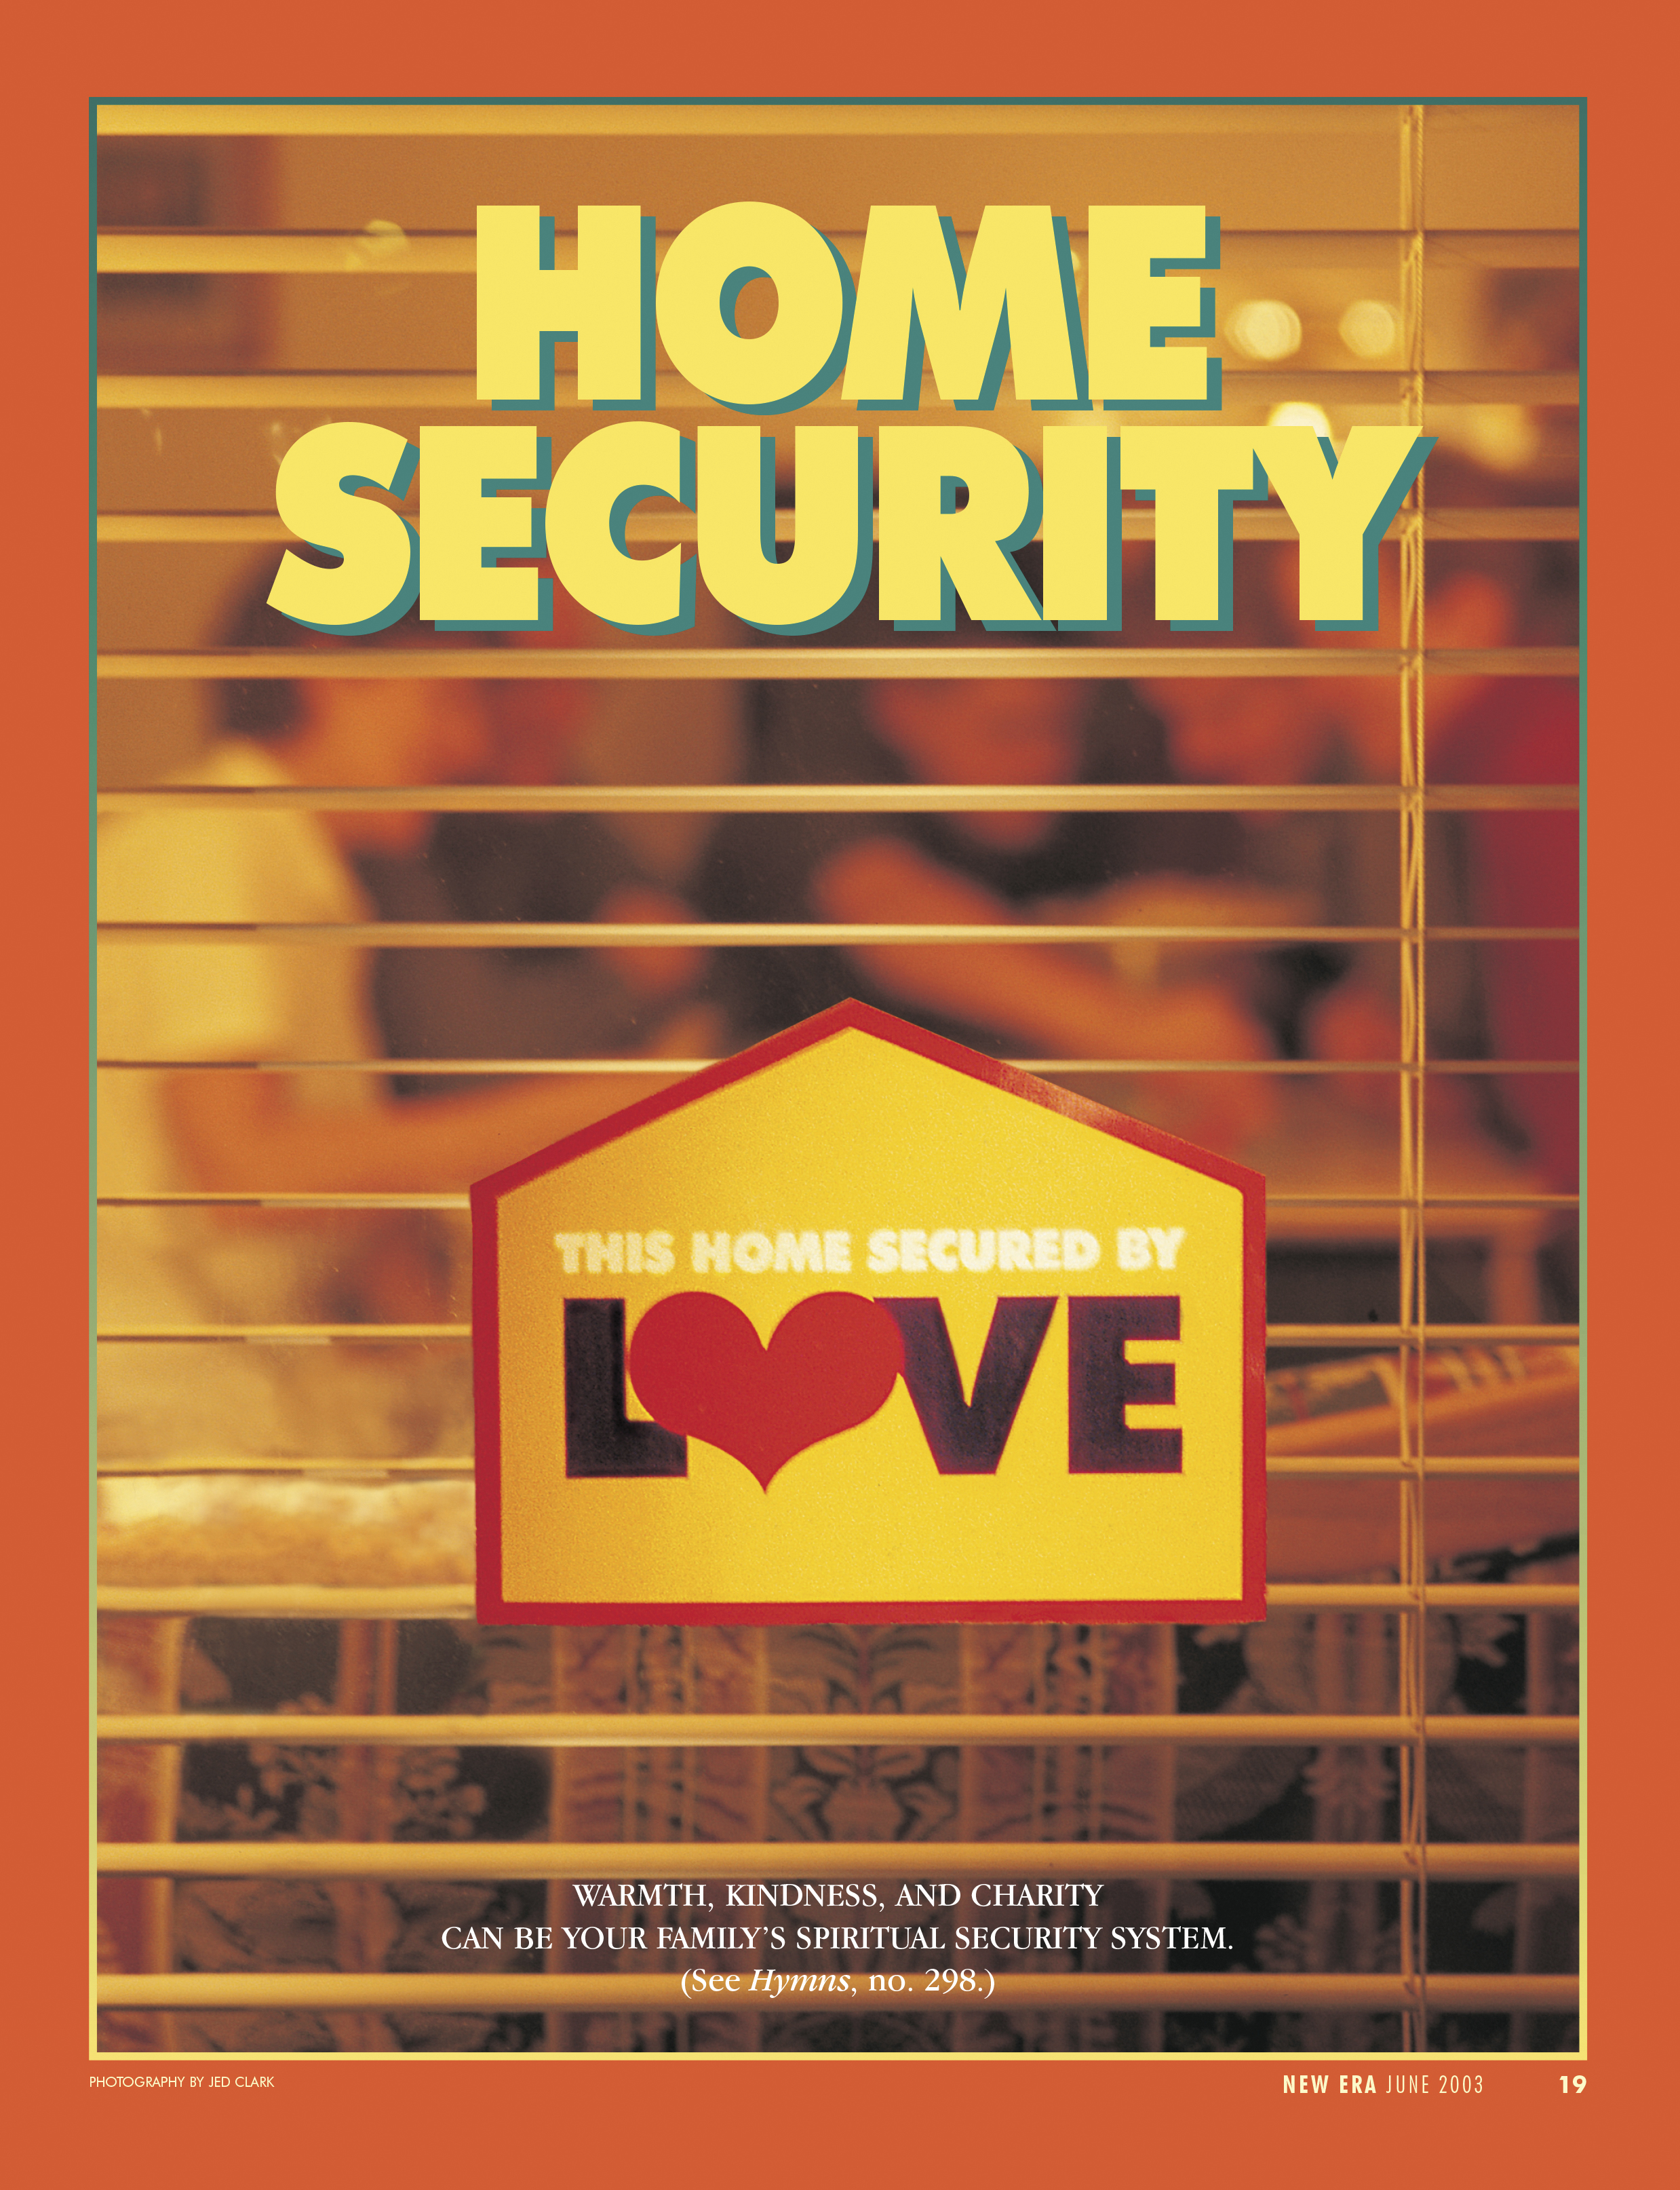 Home Security. Warmth, kindness, and charity can be your family's spiritual security system. (See Hymns, no. 298.) June 2003 © undefined ipCode 1.